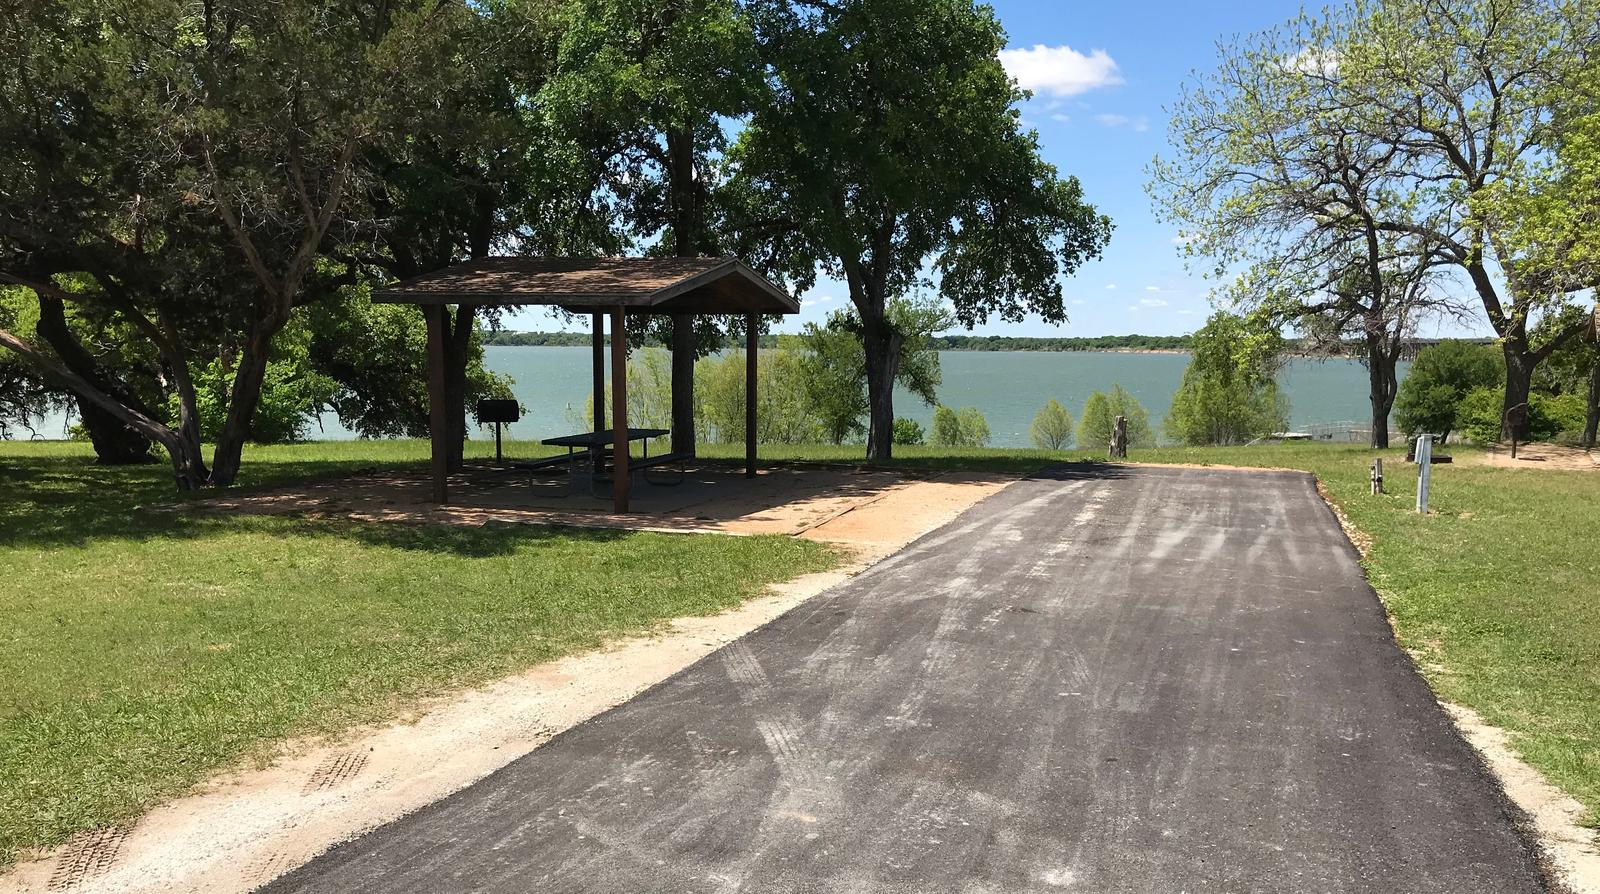 RV site with covered picnic table, grill, fire ring, and Waco Lake in the background